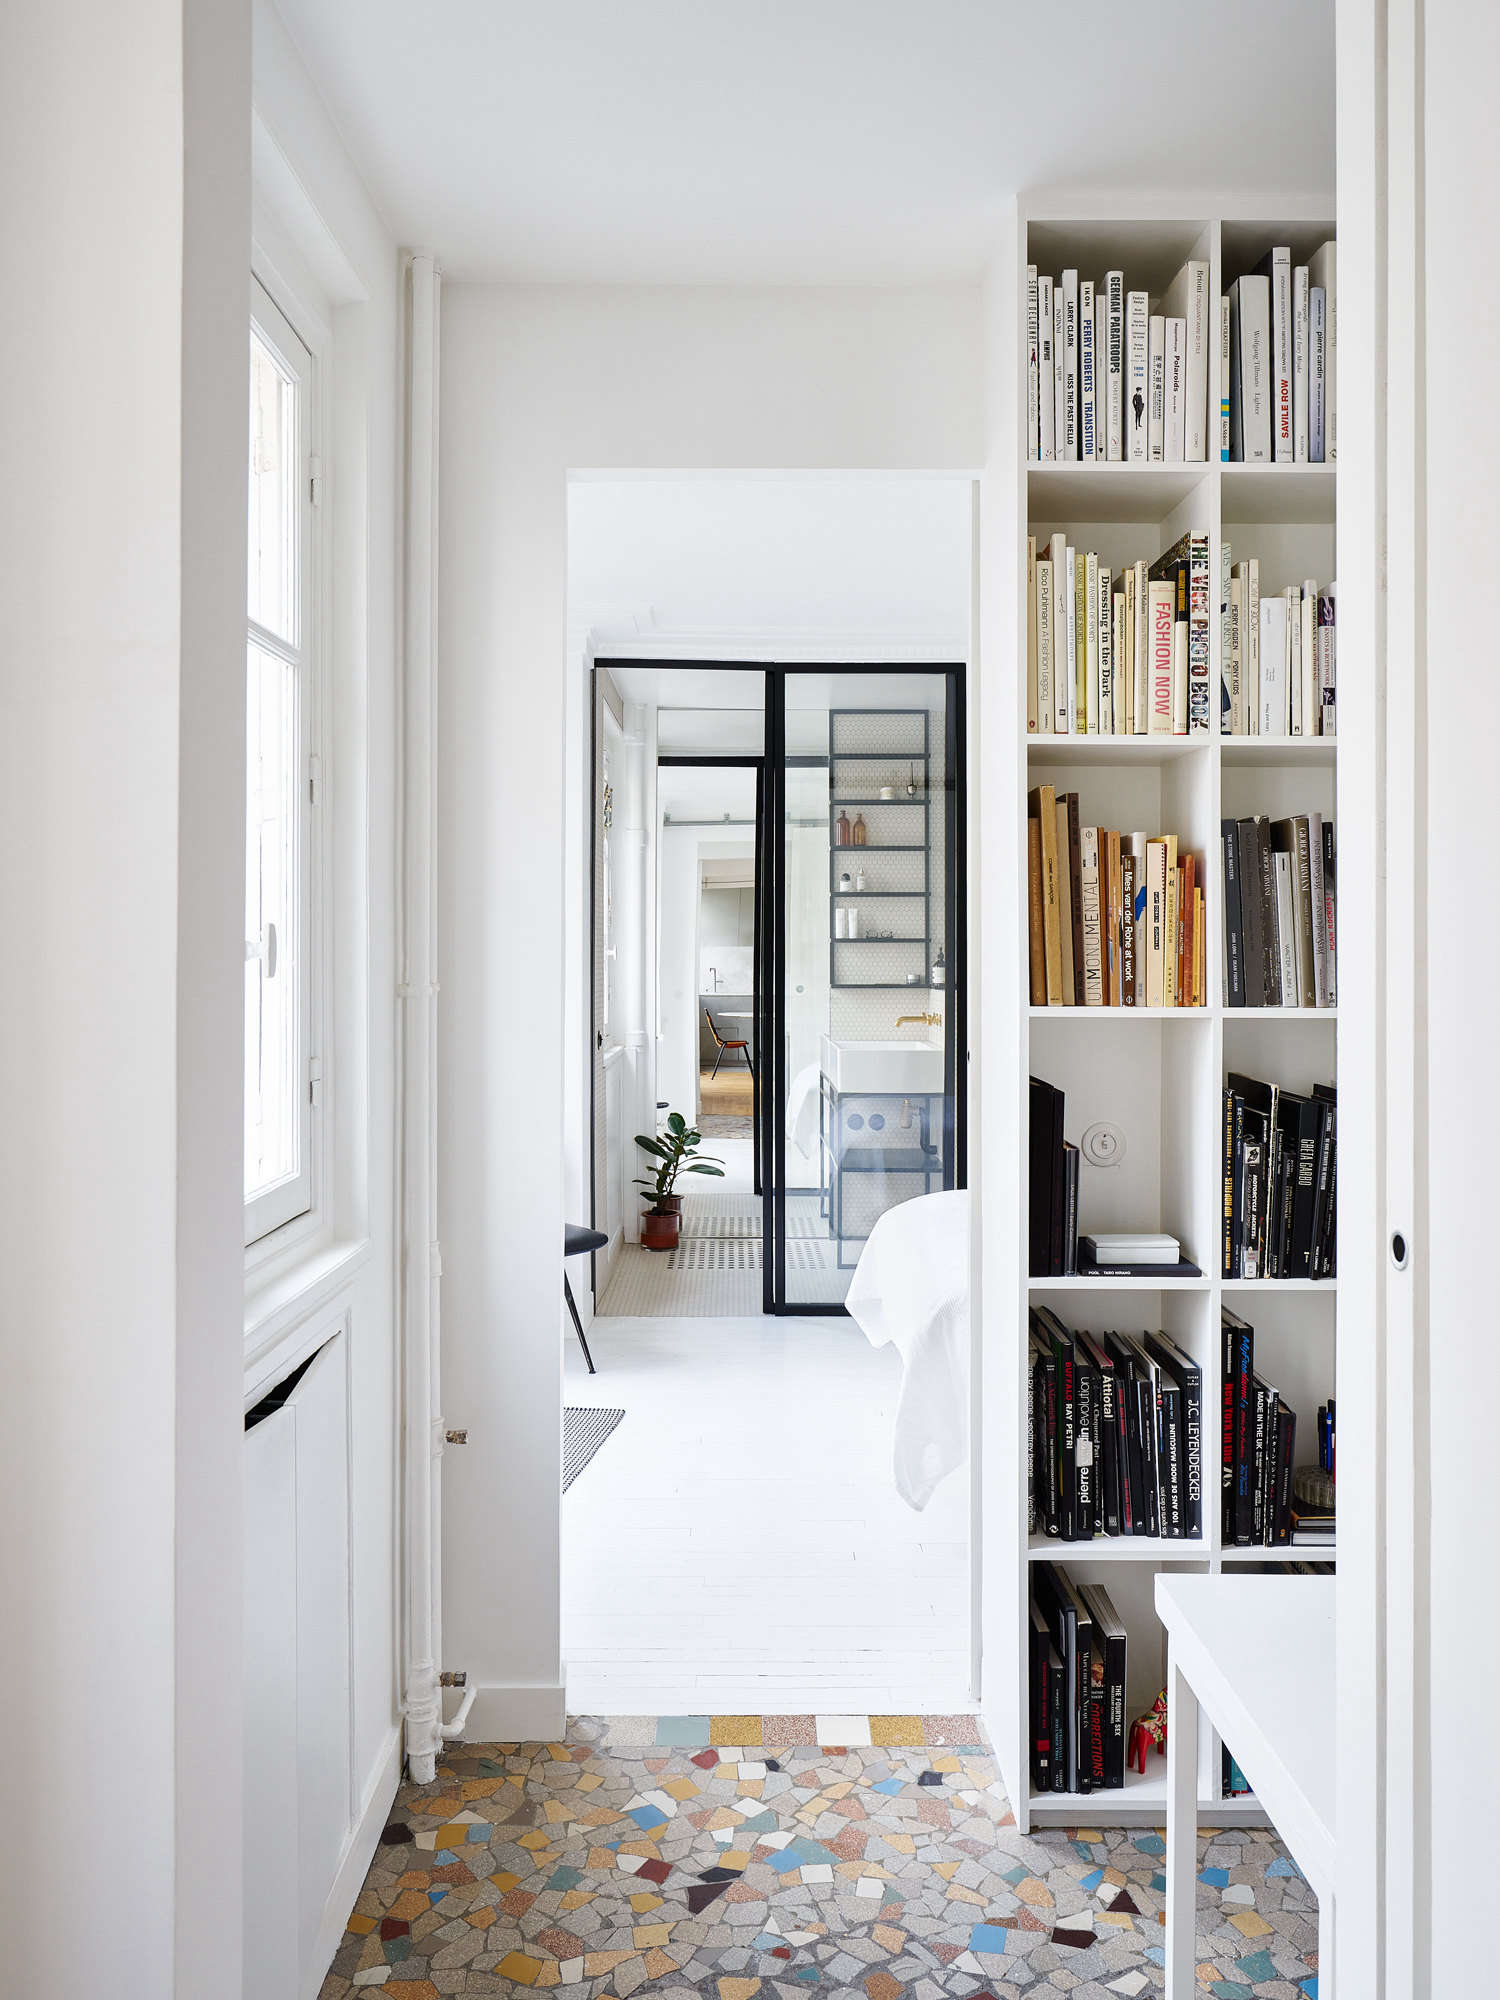 When Septembre Architecture took on a 645-square-foot flat in Paris's 11th arrondissement, the space had too many walls that just made it feel smaller. They deftly reorganized the space and improved the flow, removing walls along the way. See more in Think Big: 9 Small-Space Layout Ideas to Steal from a Petite Paris Apartment. Photograph by David Foessel, courtesy of Septembre Architecture.